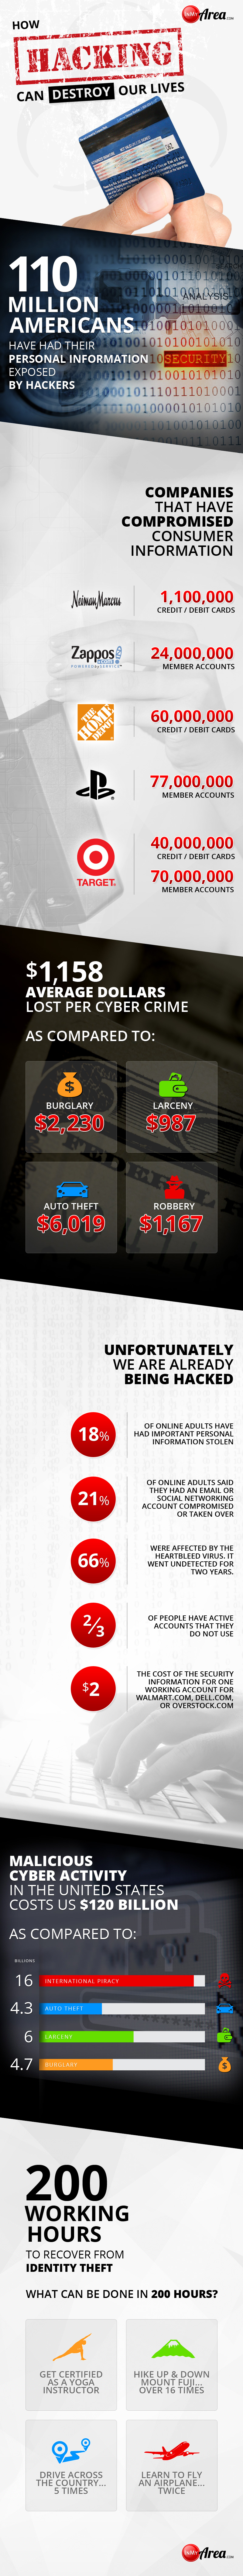 hacking infographic